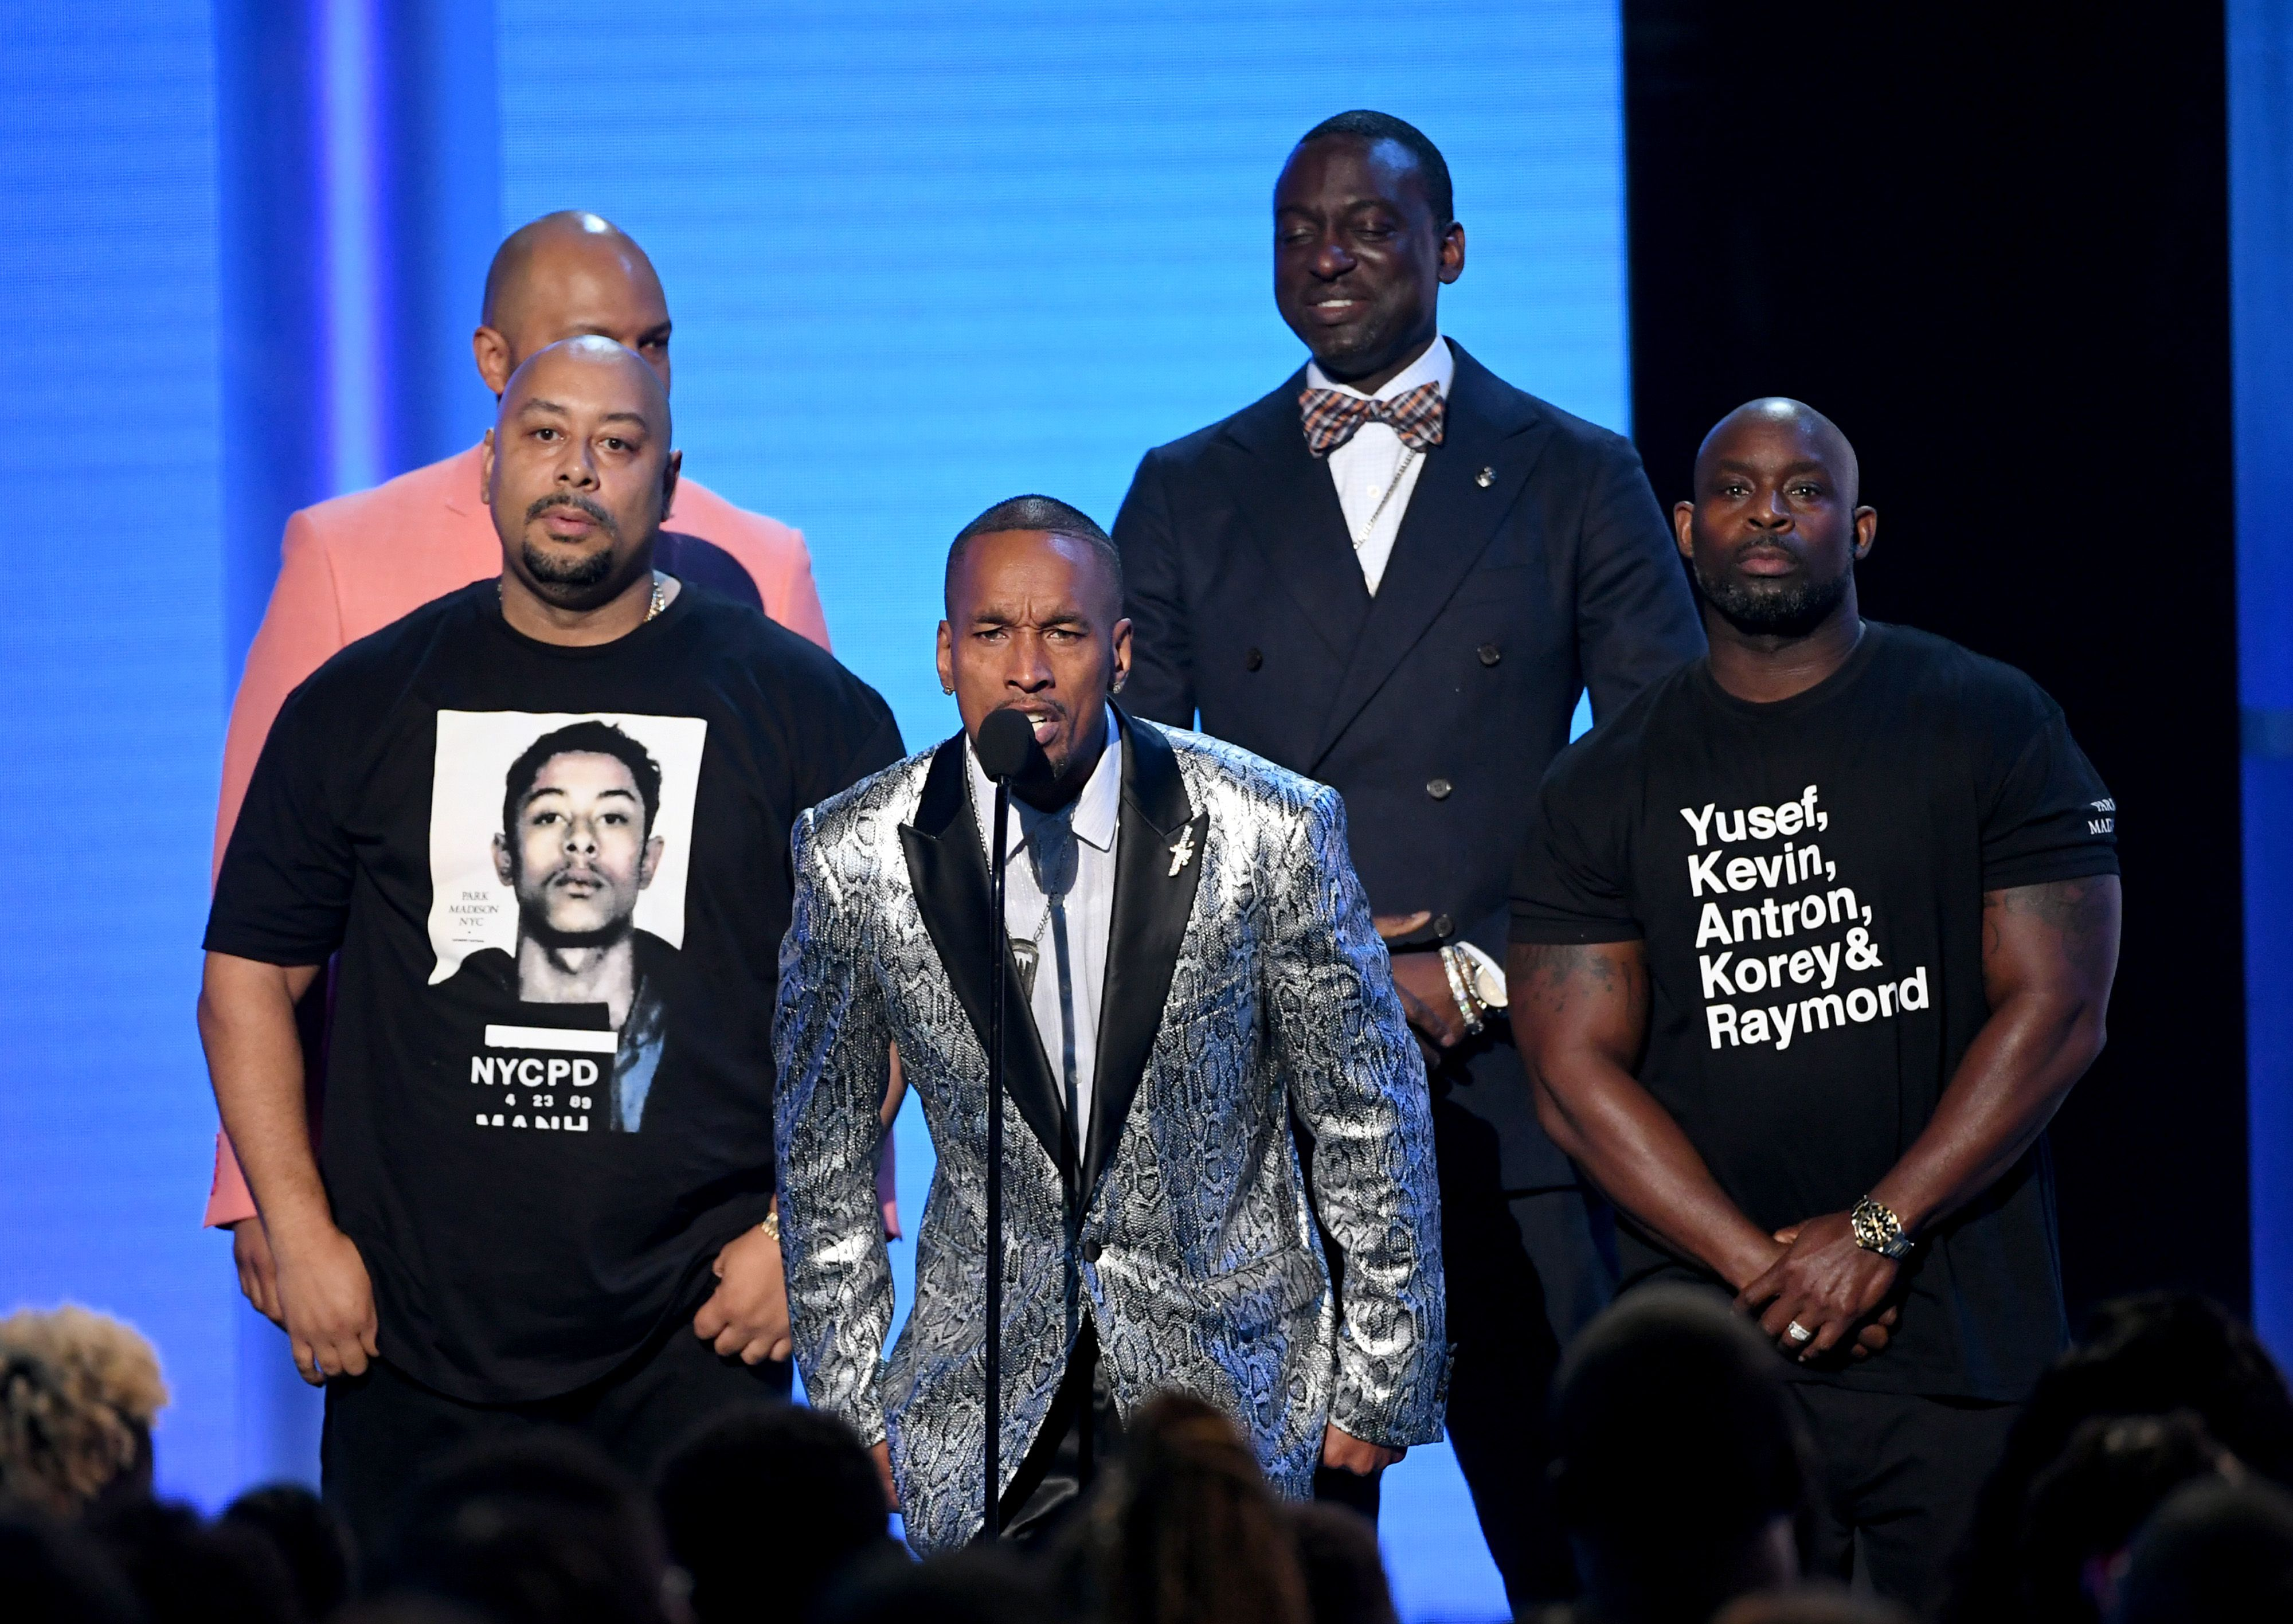 The Exonerated Five Made a Triumphant Appearance at the BET Awards